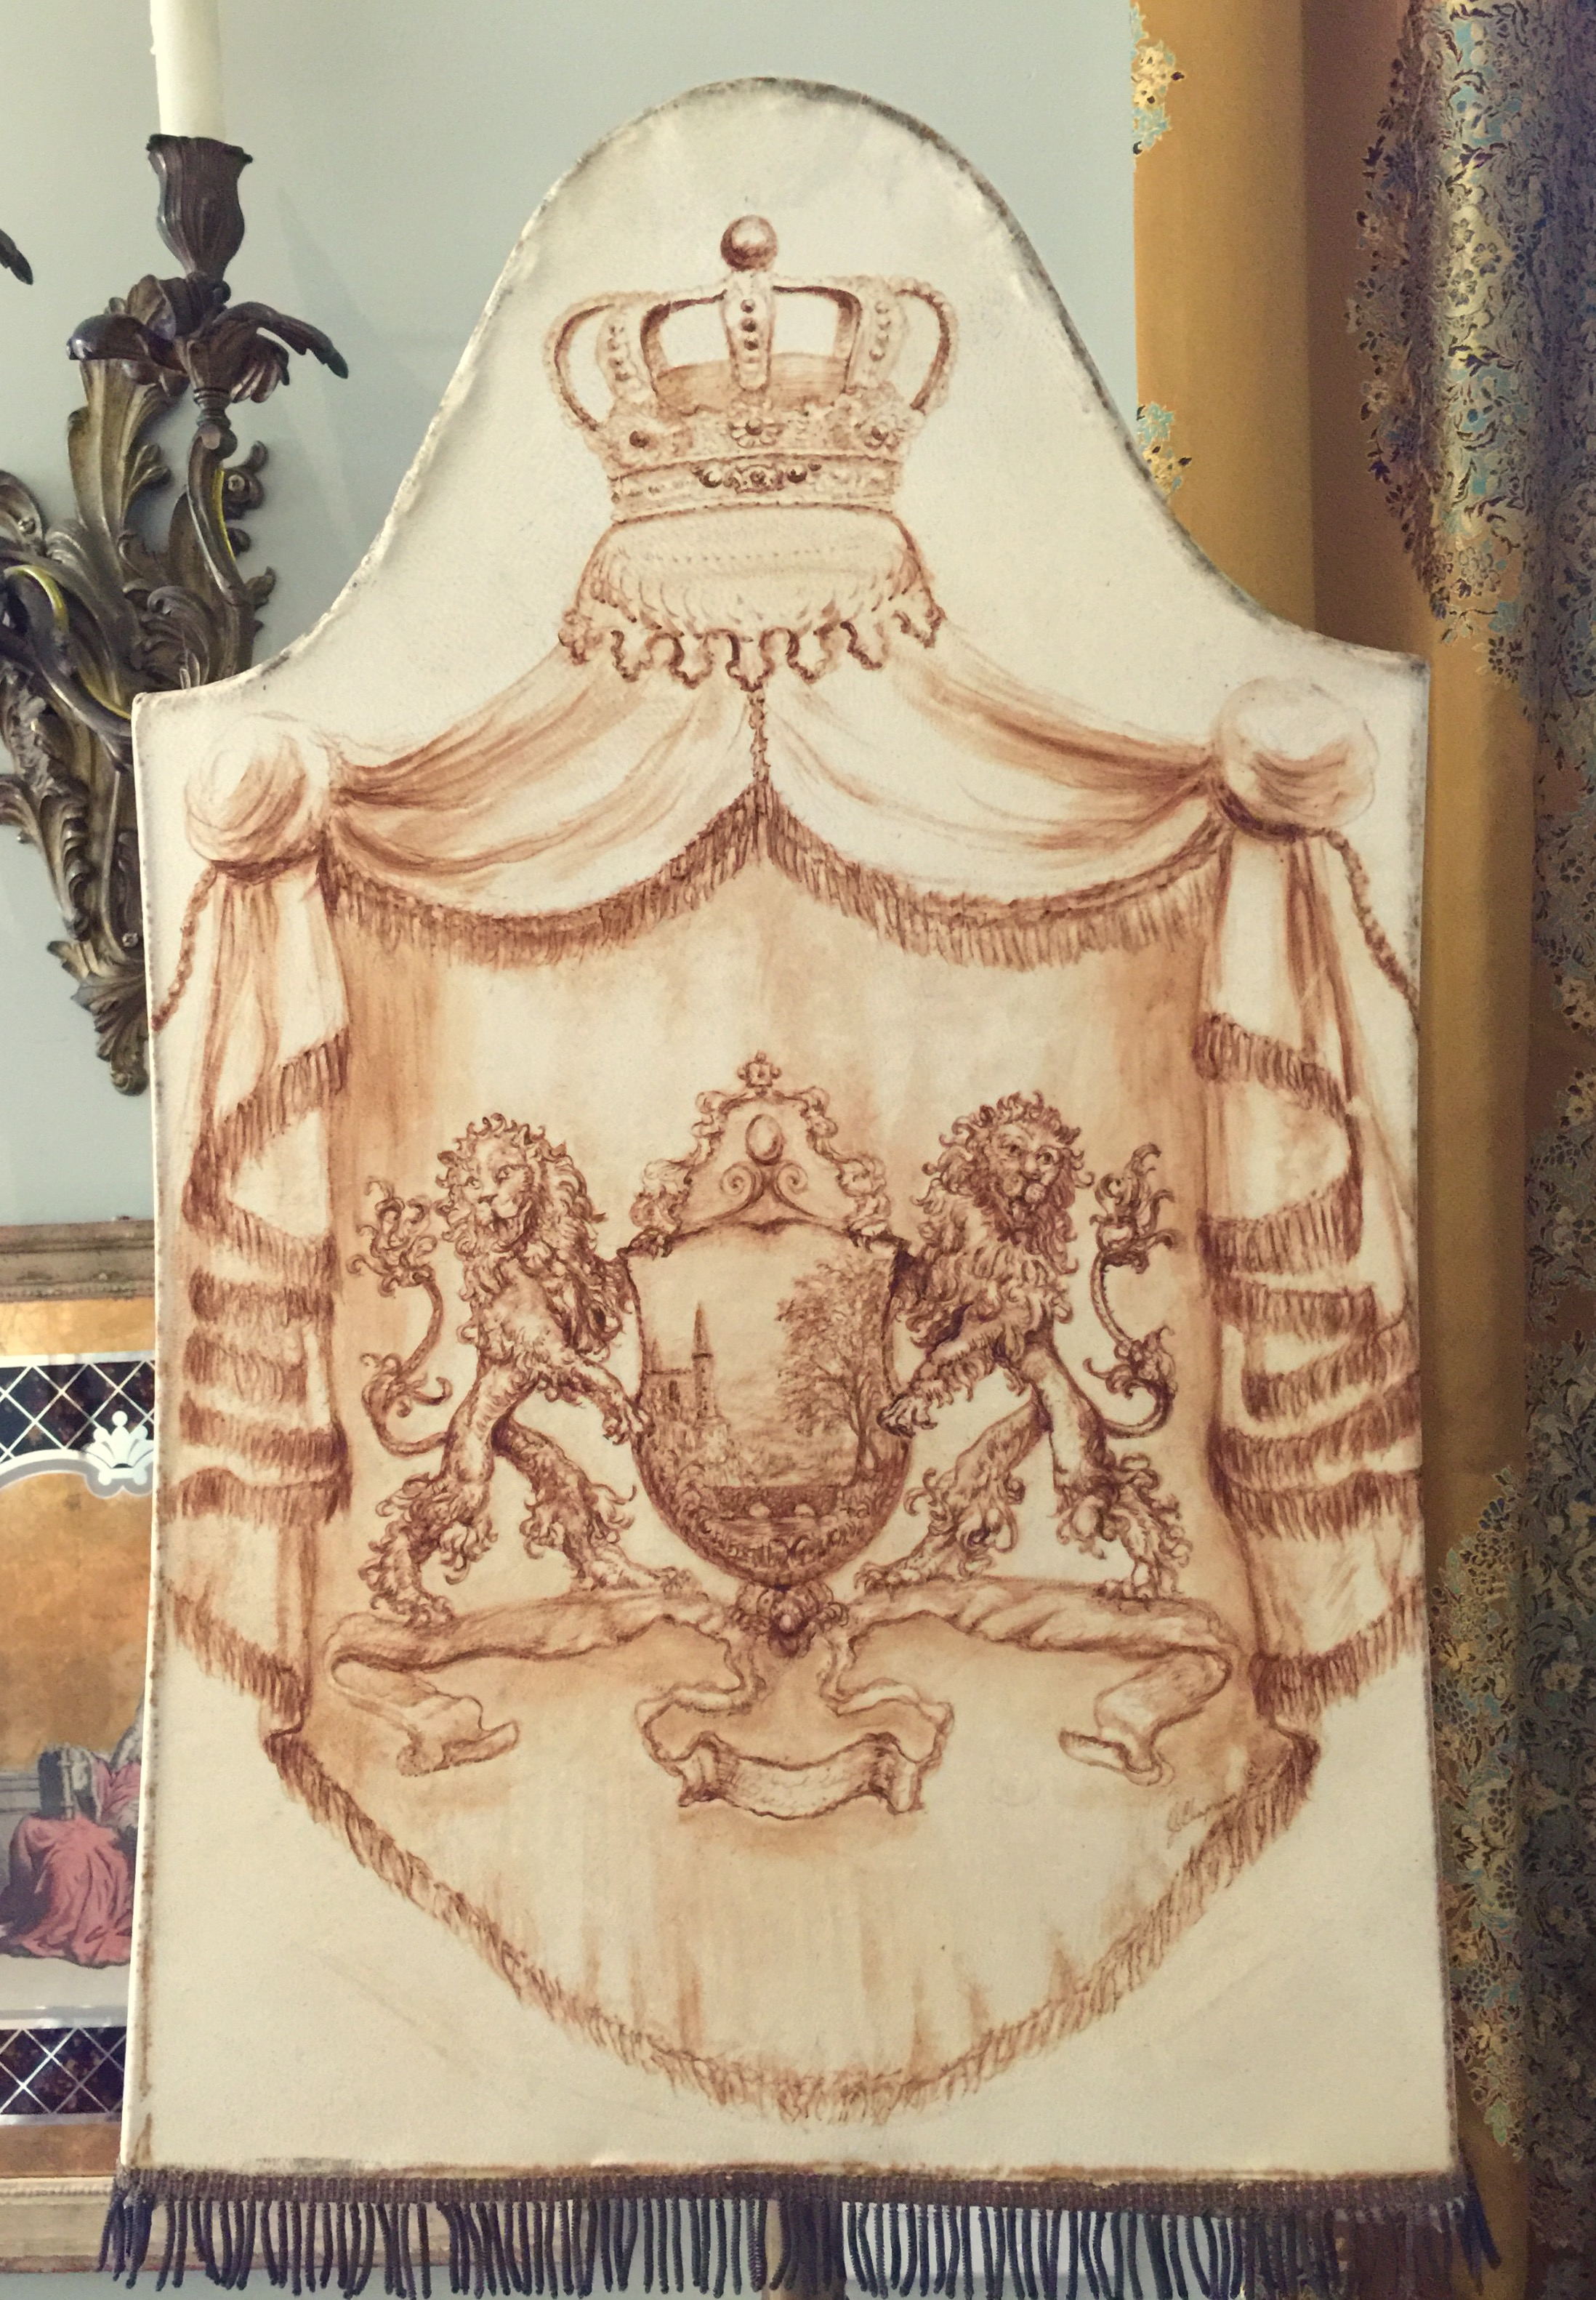 Family Crest Lampshade from the Masterpiece Collection by Jennifer Chapman